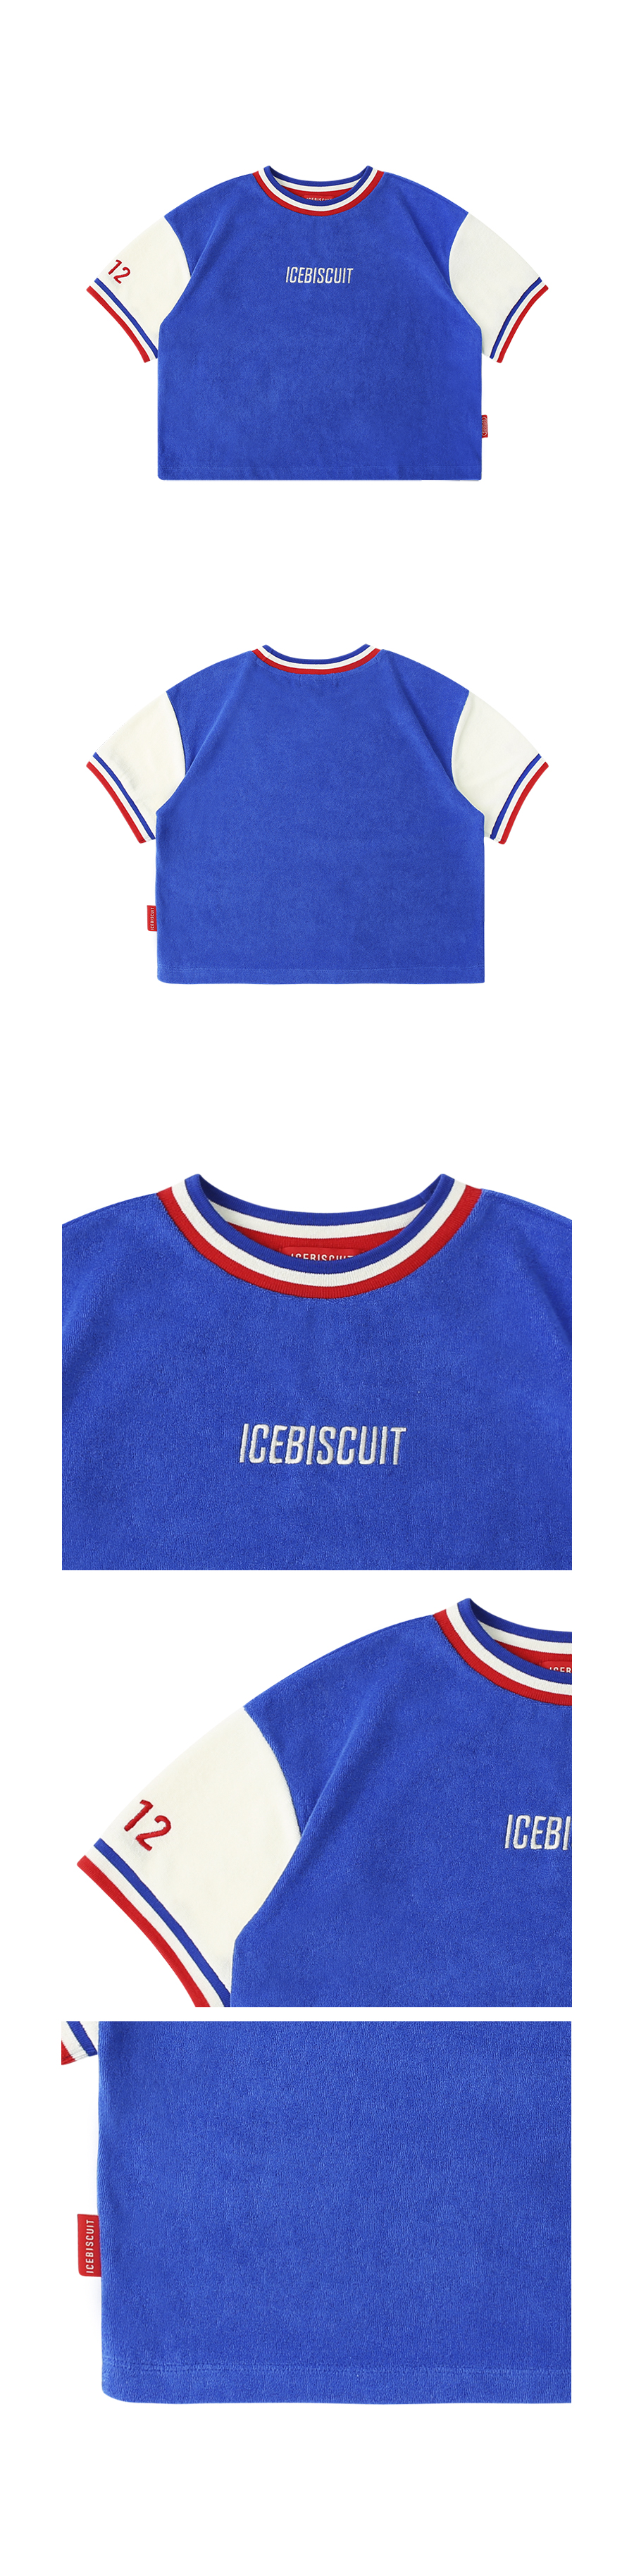 Icebiscuit terry color block cropped t-shirt 상세 이미지